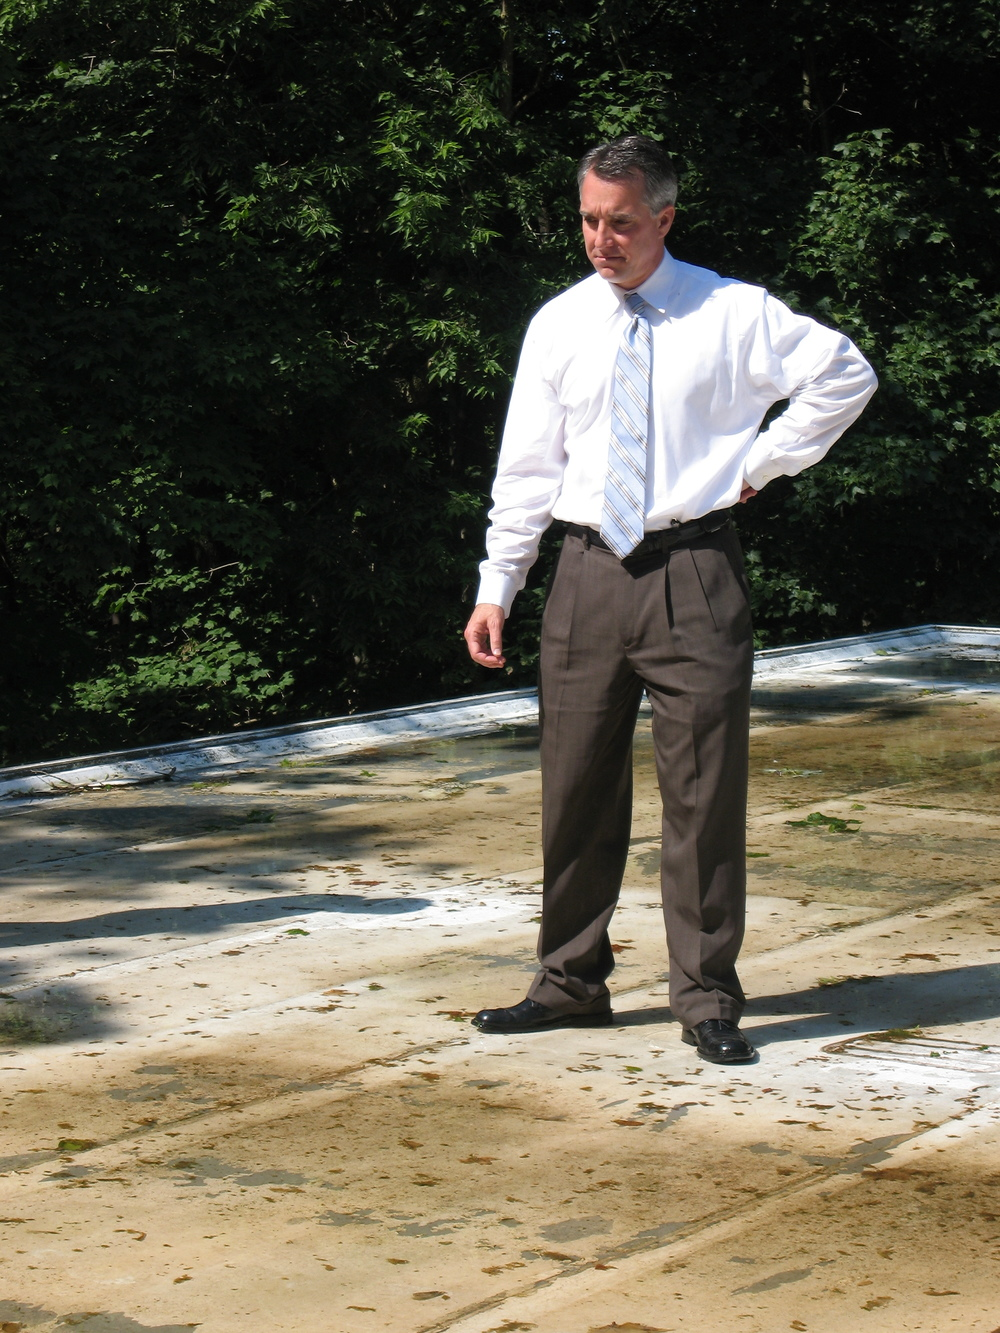 Delph Gustitus examines roof at Farnsworth House.